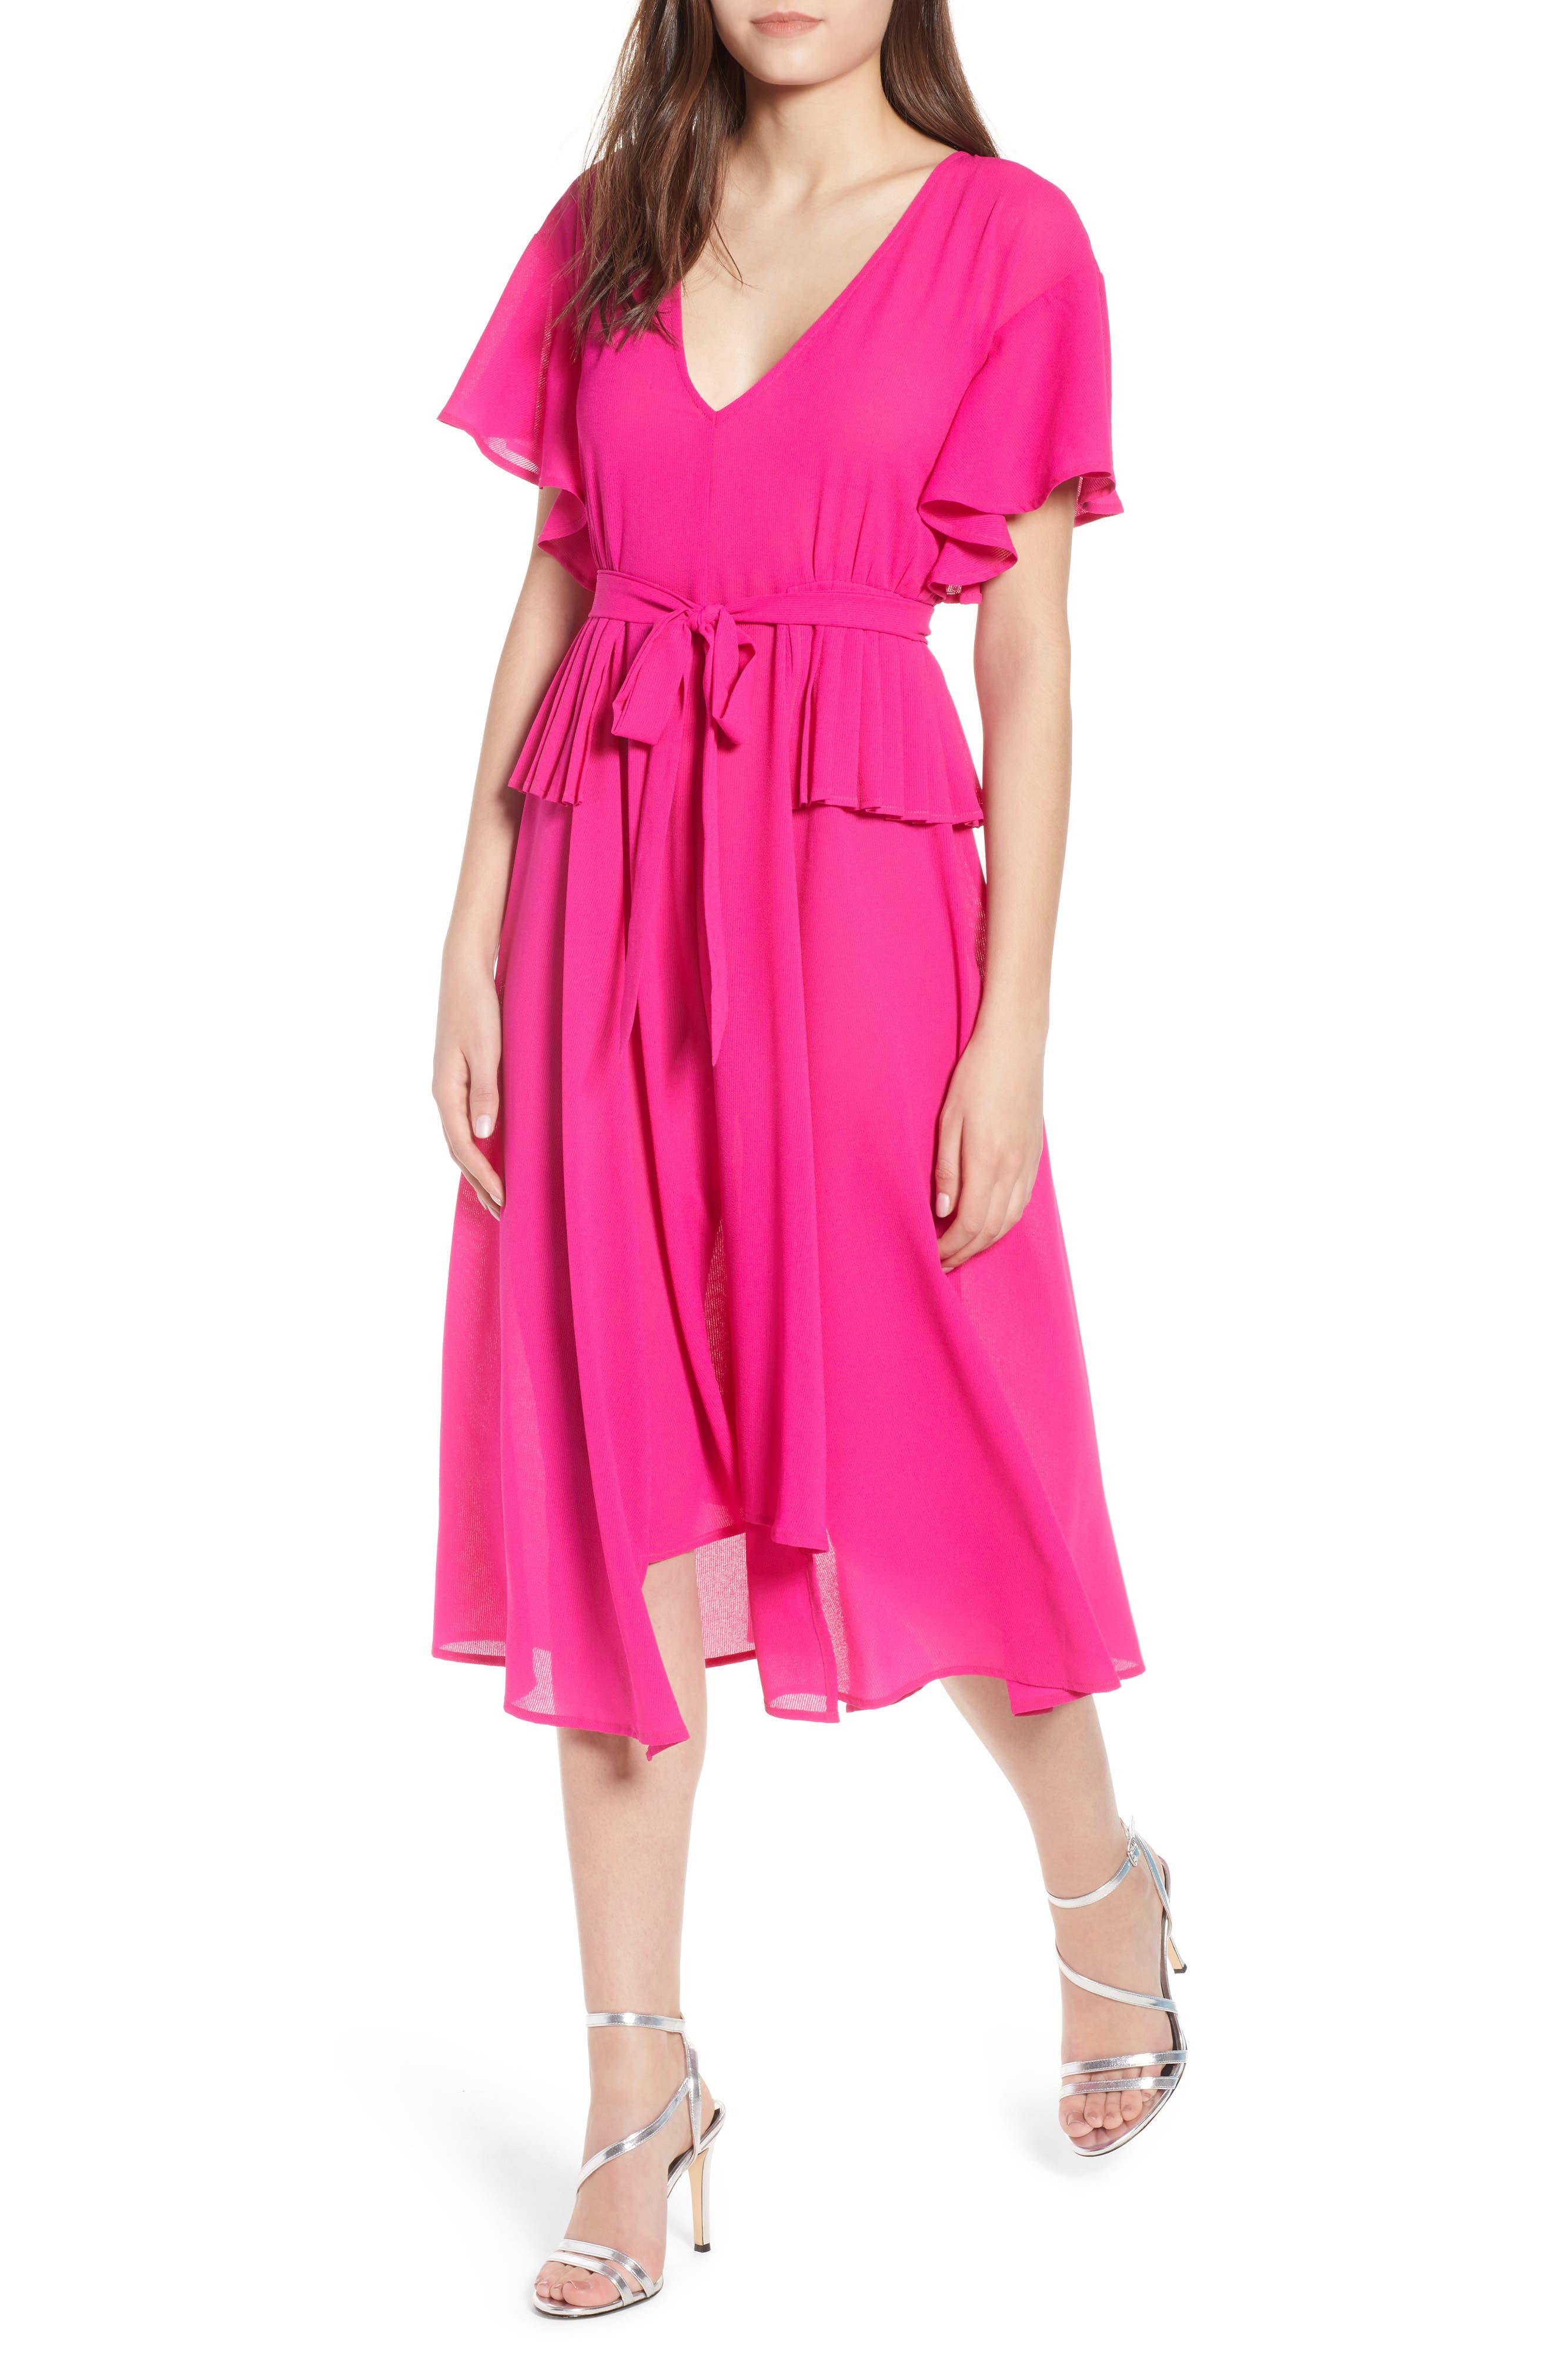 LOST INK Chiffon Midi Dress